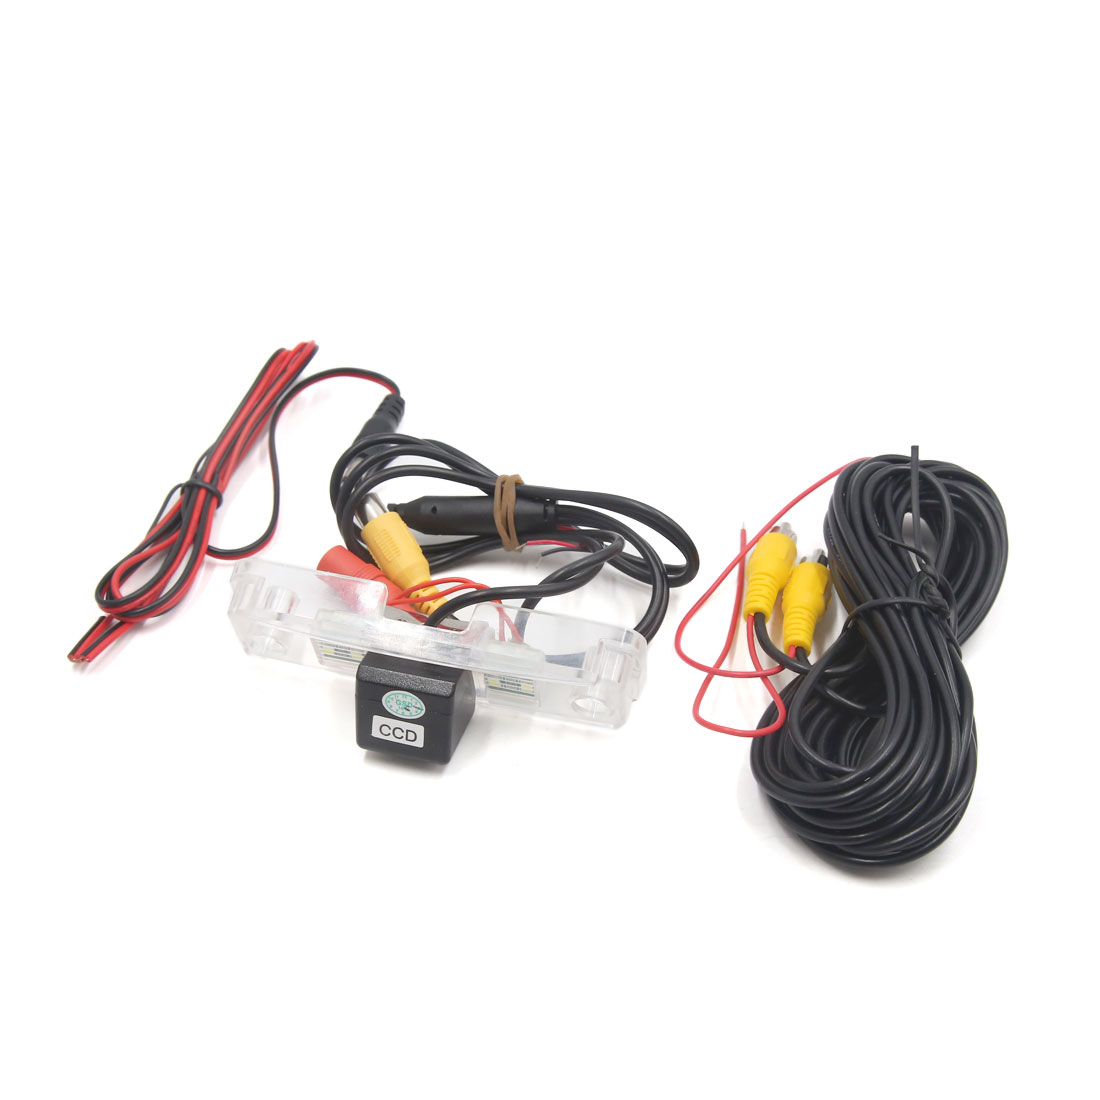 Black Clear Car CCD Rear View Reverse Backup Parking Camera for Forester